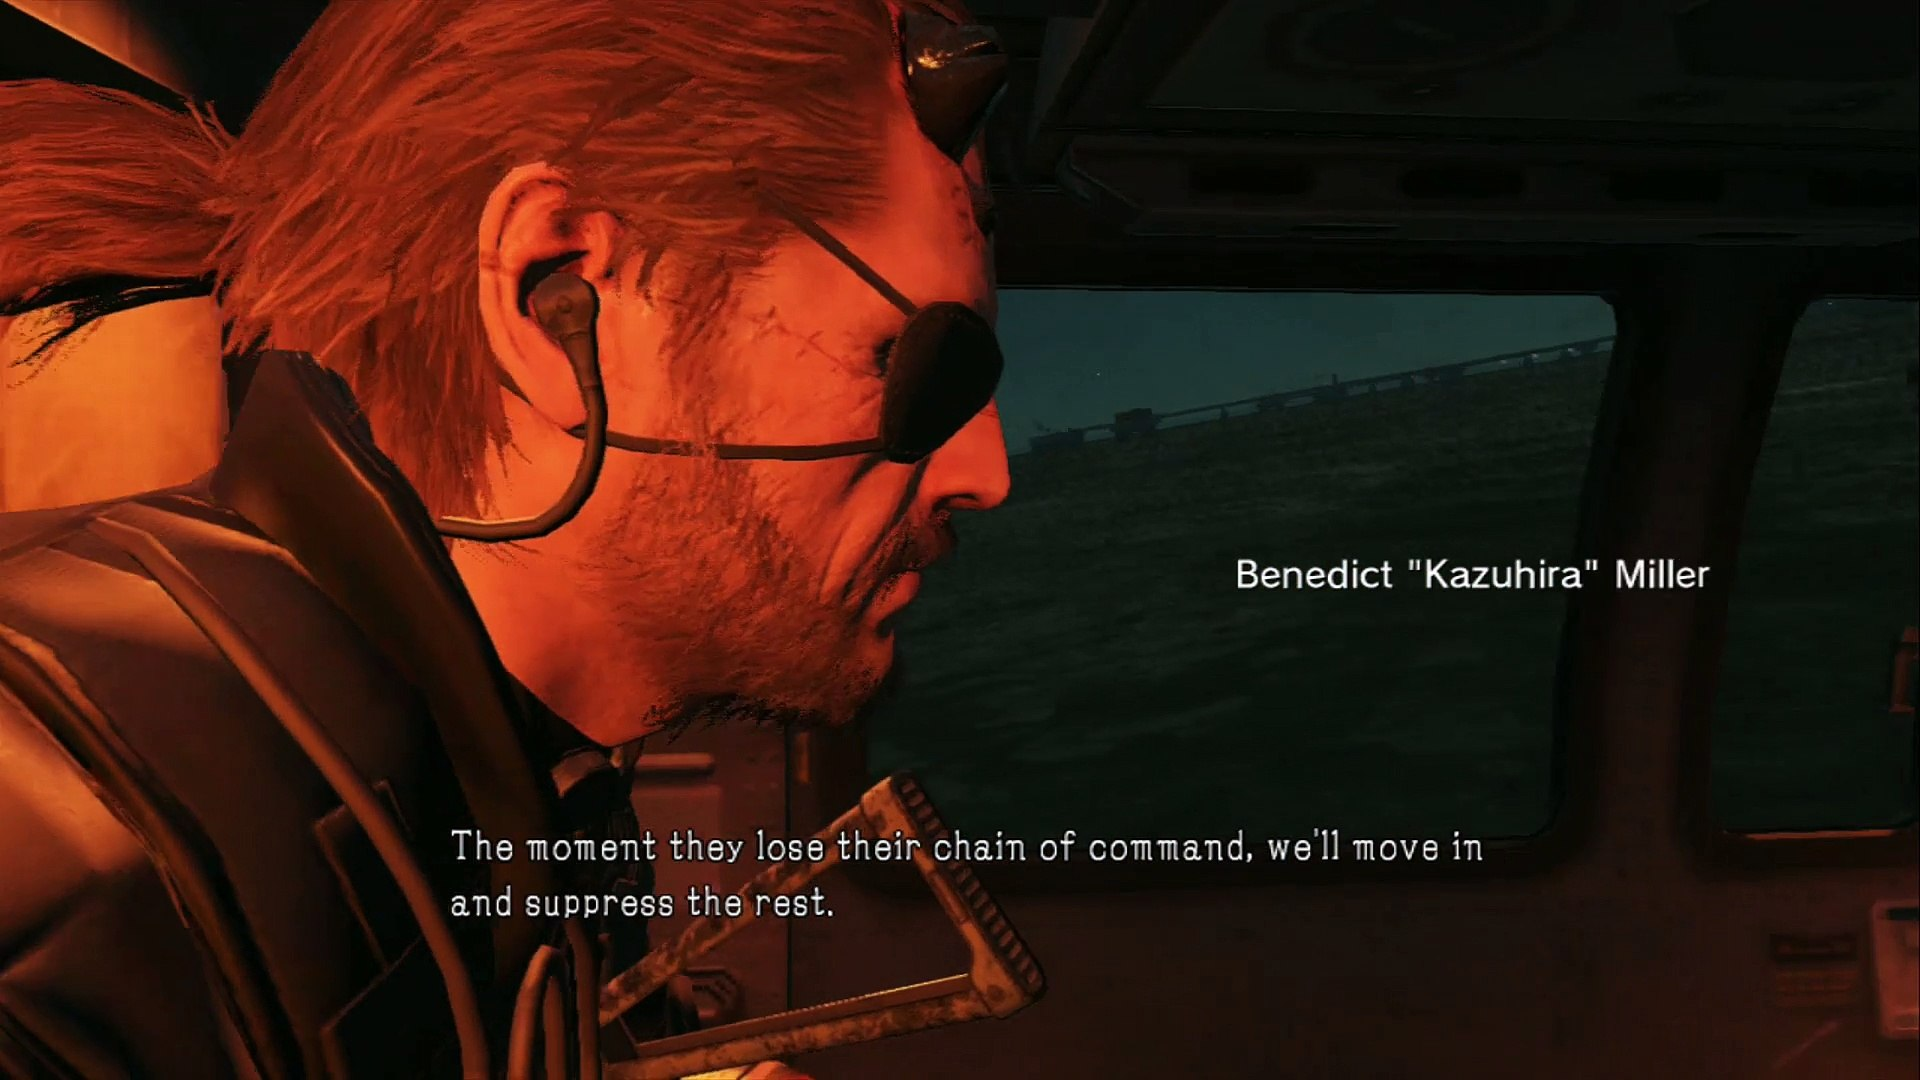 Metal Gear Solid V The Phantom Pain Gameplay Part 38 No Commentary Mgs5 1080p Hd Video Dailymotion Solid snake as a drill instructor and survival coach for foxhound.his character was expounded upon in metal gear solid: dailymotion